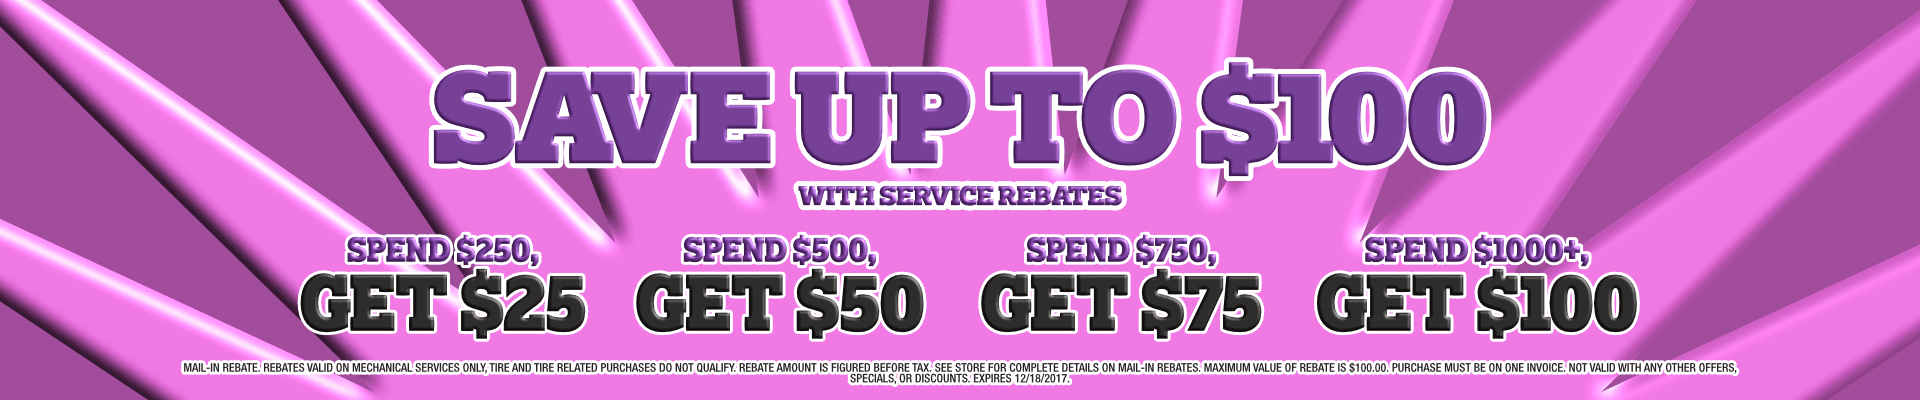 Save Up to $100 with Rebates